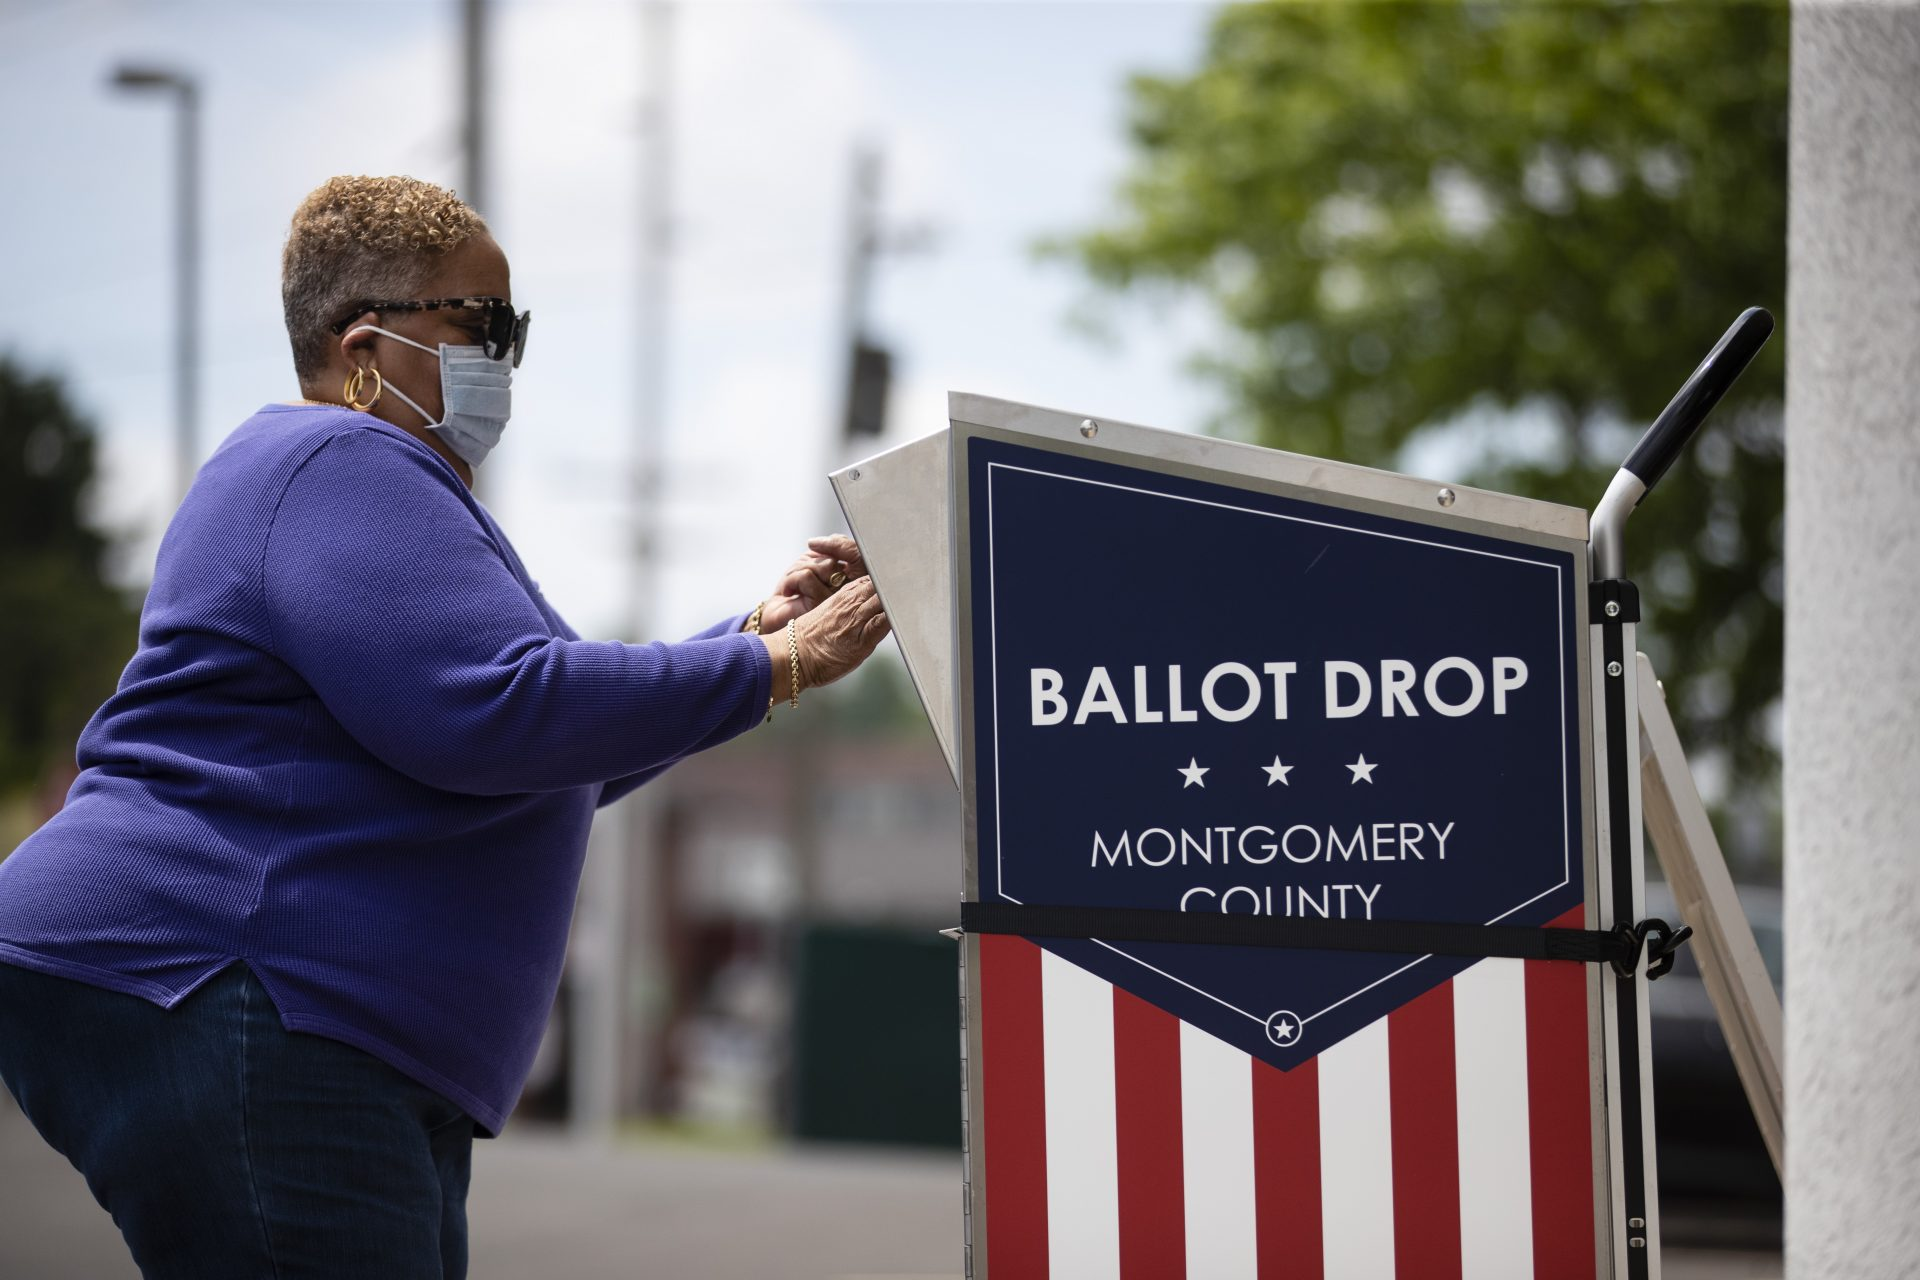 A voter drops off their mail-in ballot prior to the primary election, in Willow Grove, Pa., Wednesday, May 27, 2020.